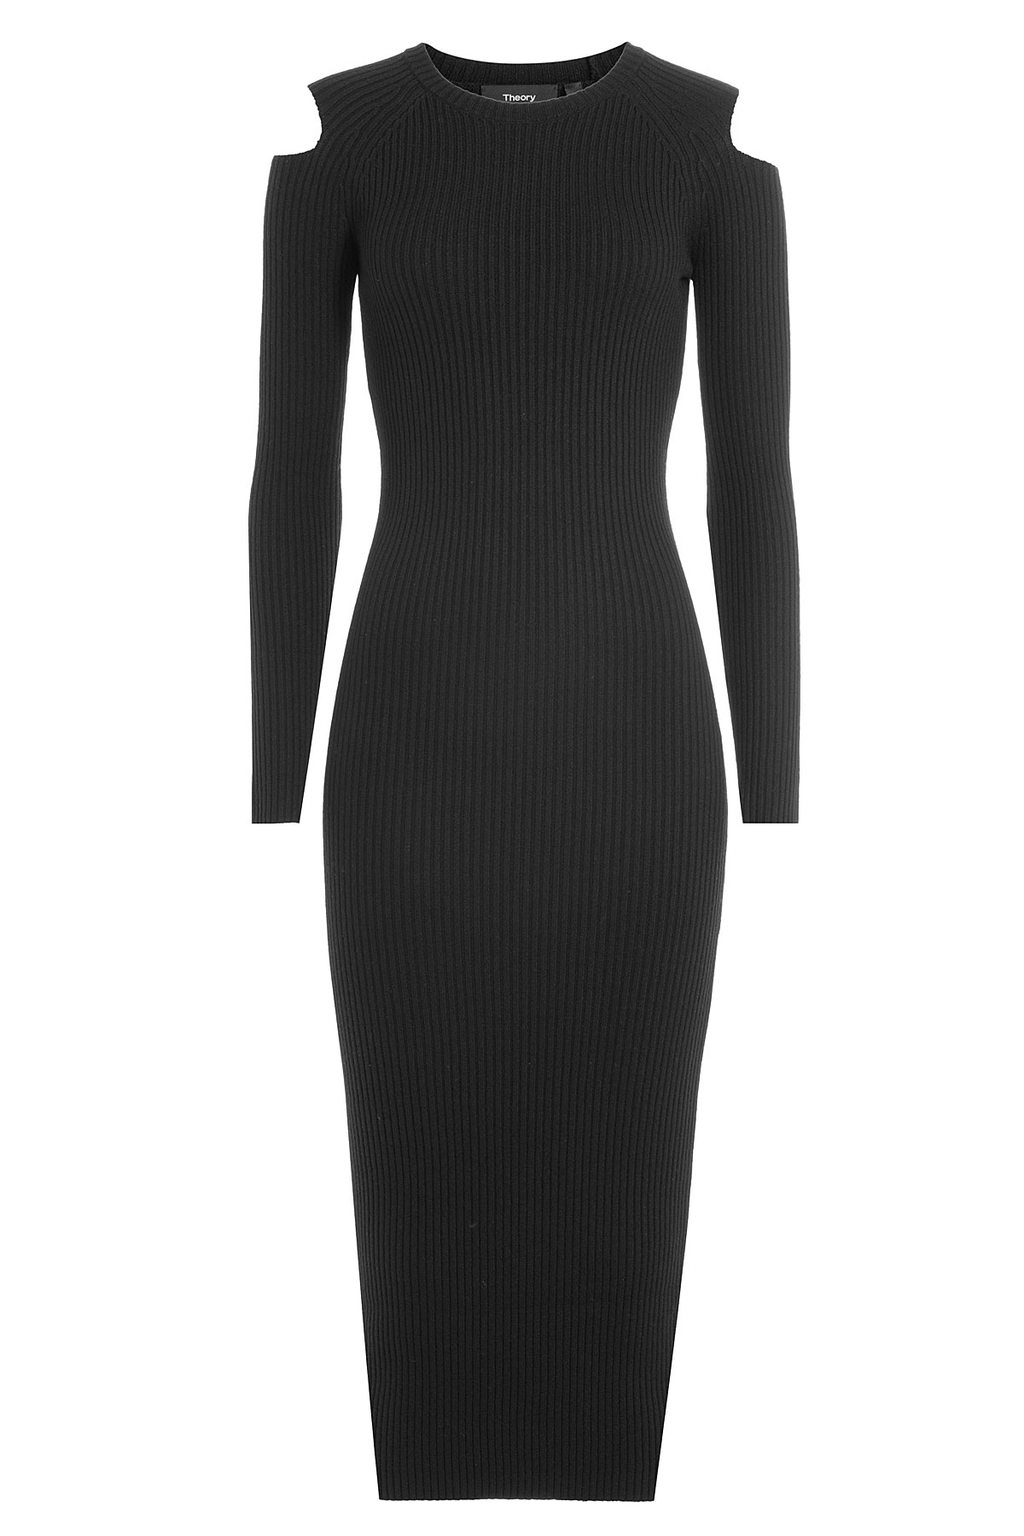 Wool Dress With Cut Out Shoulders - length: below the knee; fit: tight; pattern: plain; style: bodycon; predominant colour: black; occasions: evening; fibres: wool - mix; neckline: crew; shoulder detail: cut out shoulder; sleeve length: long sleeve; sleeve style: standard; texture group: jersey - clingy; pattern type: fabric; season: a/w 2016; wardrobe: event